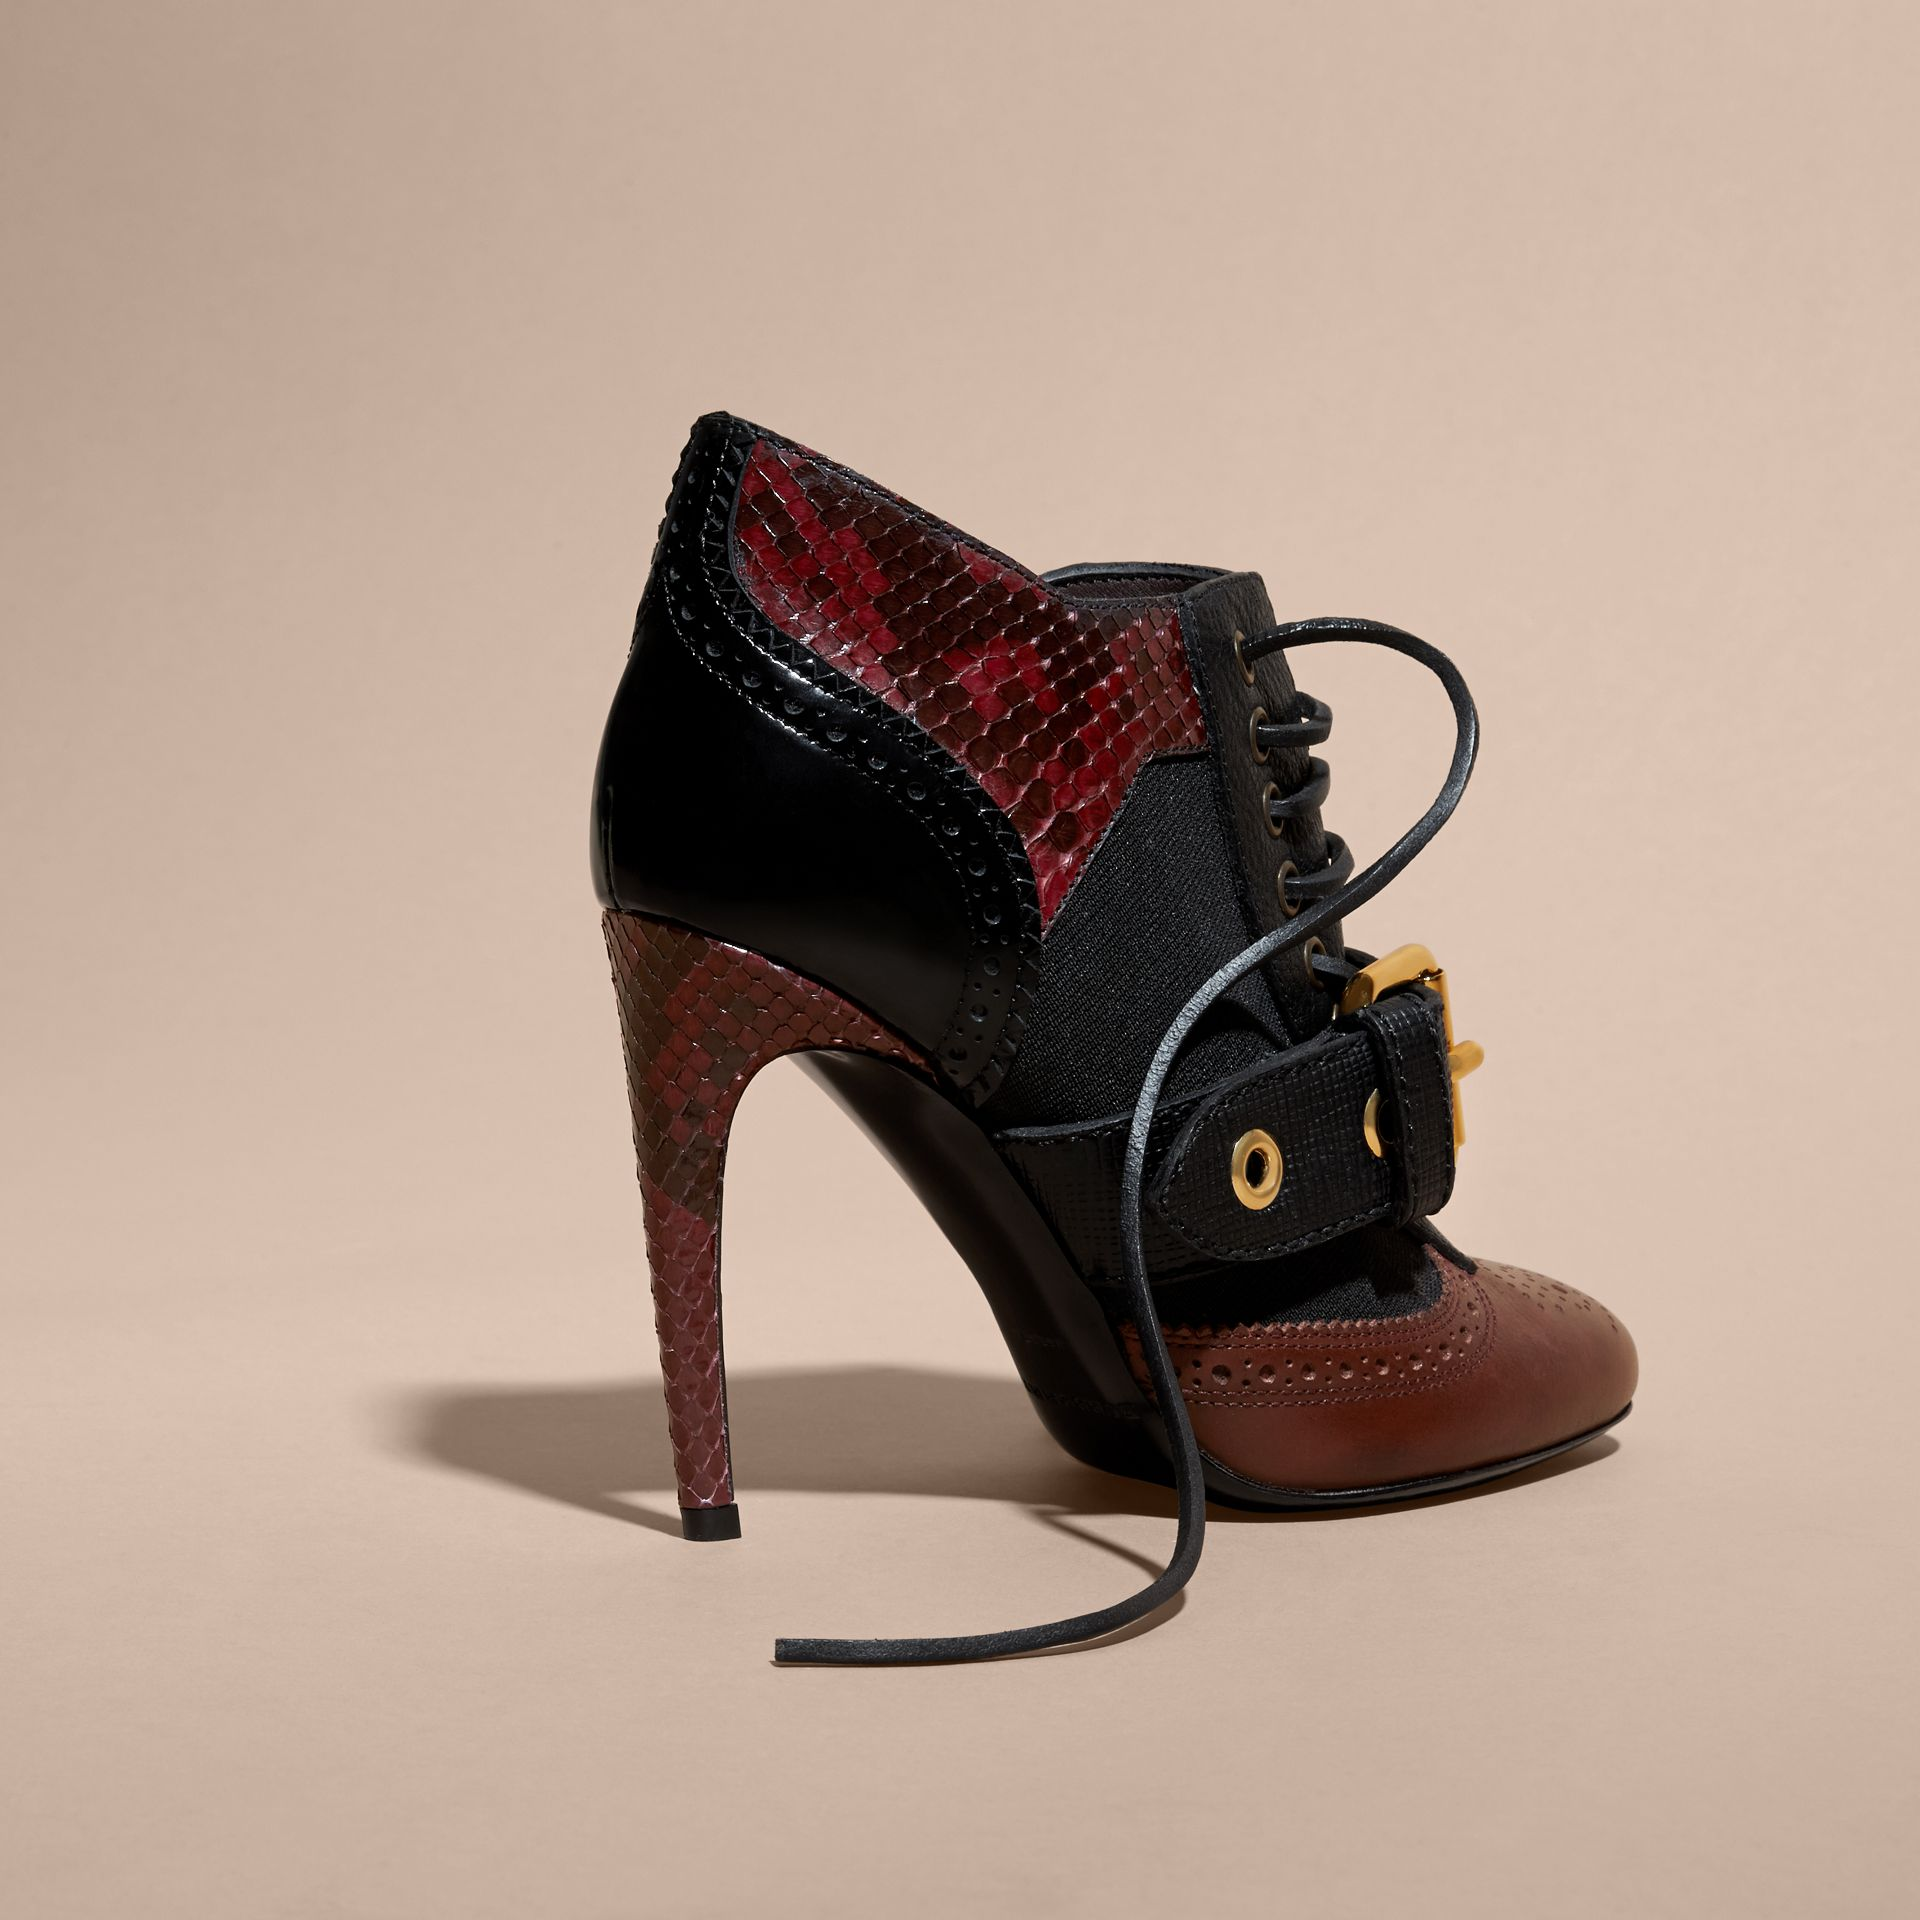 Bordeaux Buckle Detail Leather and Snakeskin Ankle Boots Bordeaux - gallery image 4